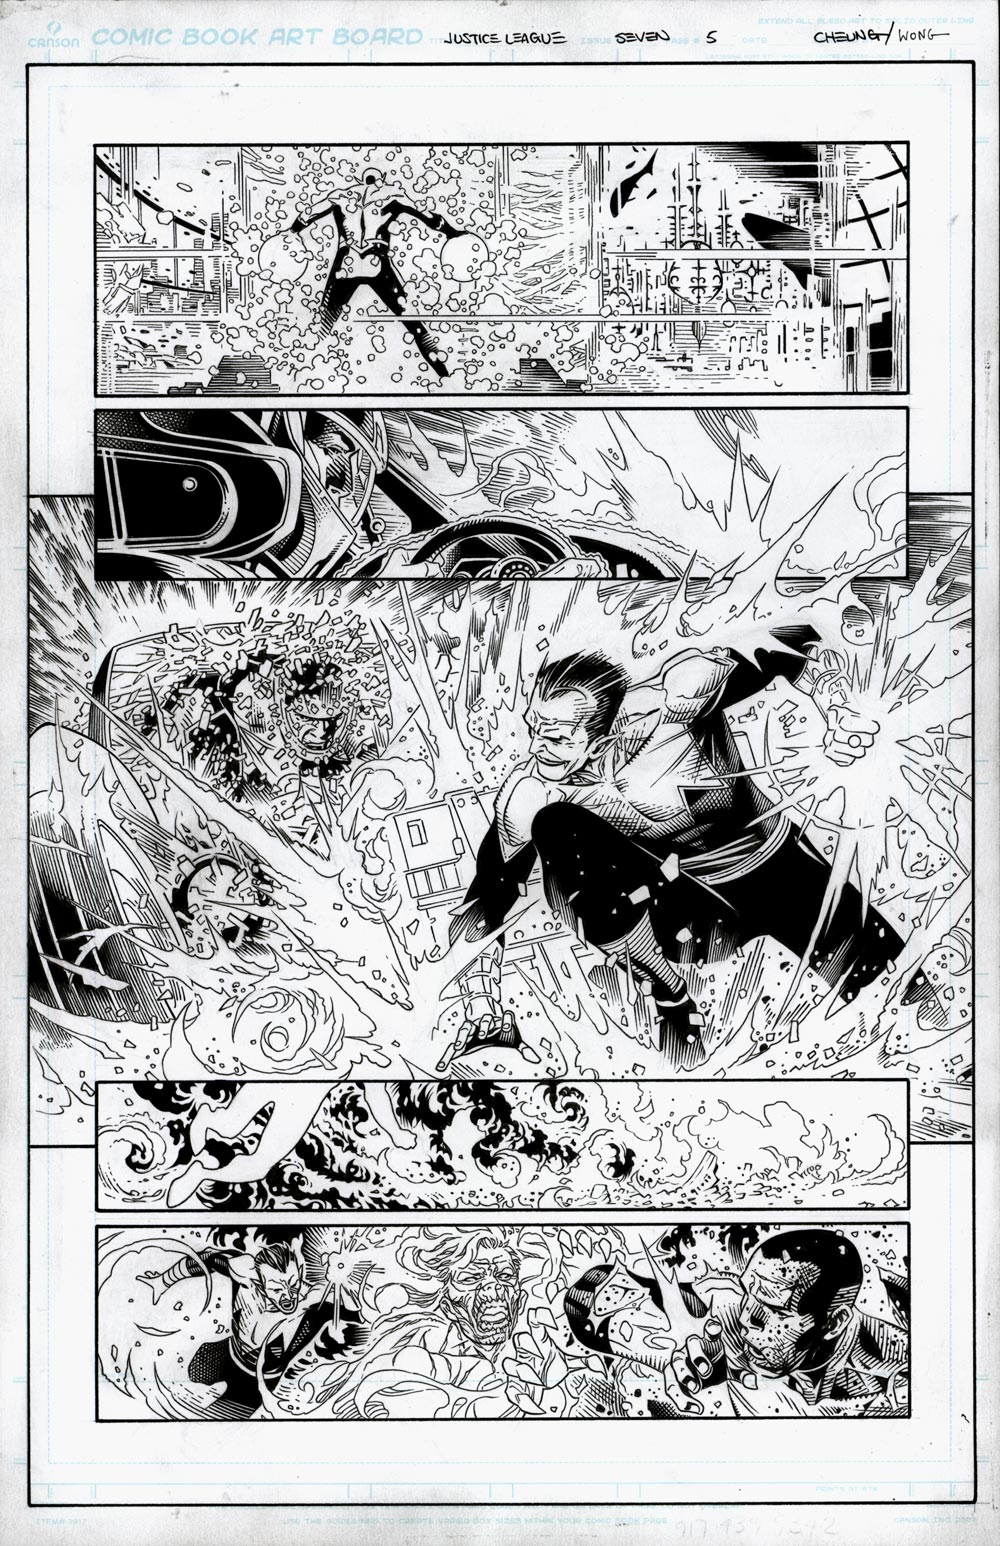 Image of JUSTICE LEAGUE #7 Page 05